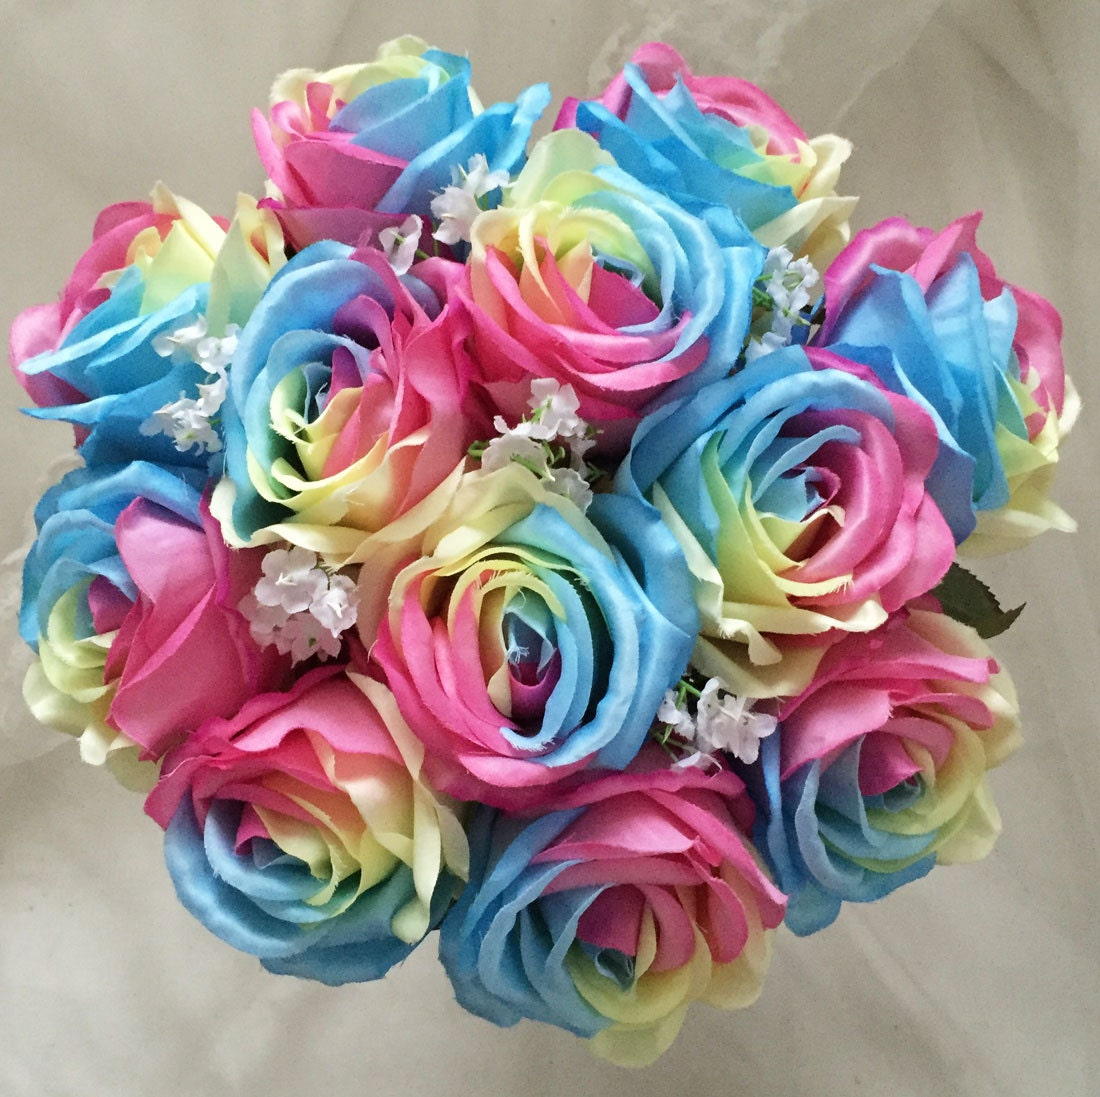 Mix silk rainbow roses artificial flowers wedding bouquet for Where can i buy rainbow roses